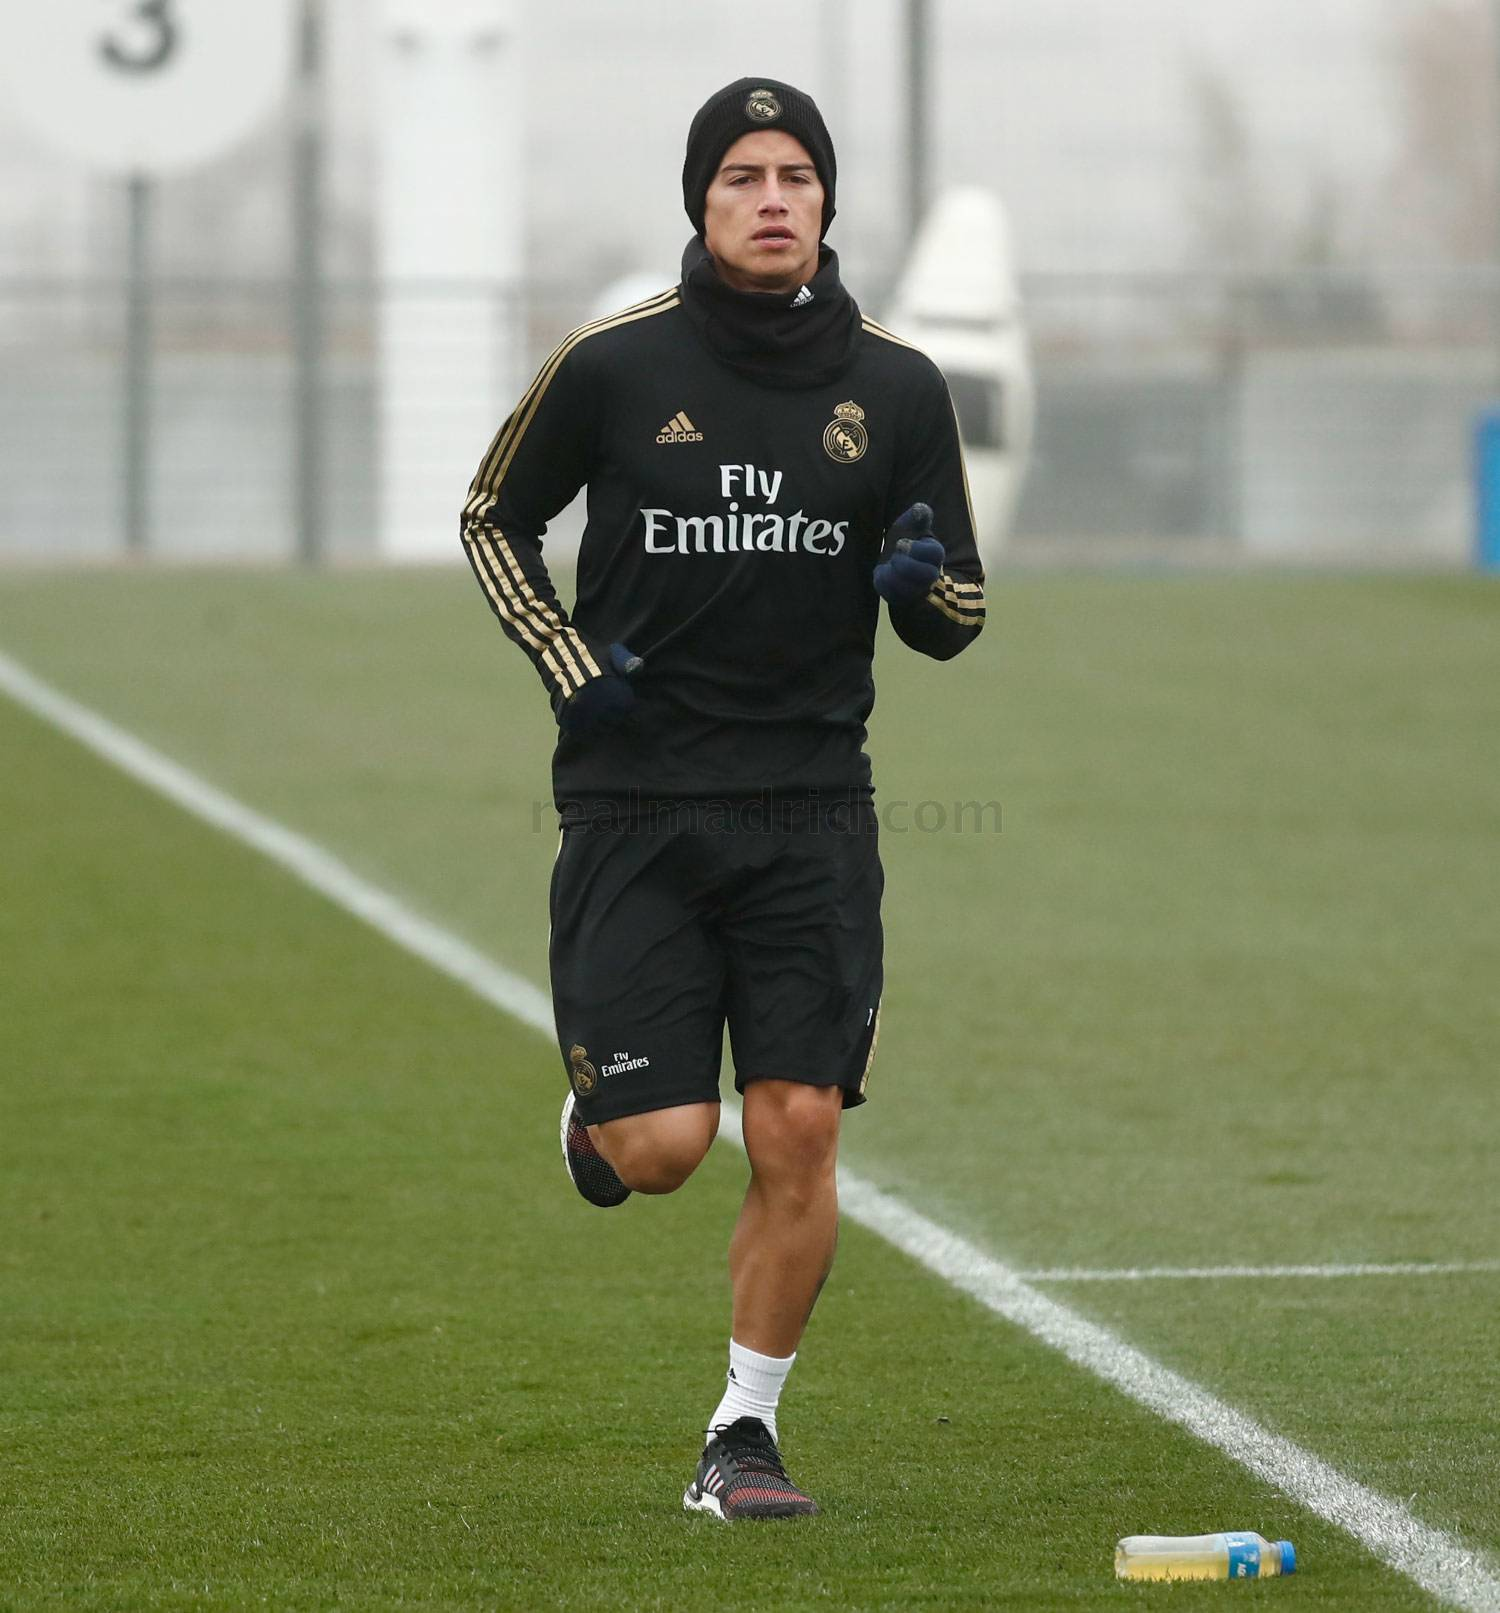 Real Madrid - Entrenamiento del Real Madrid  - 08-12-2019